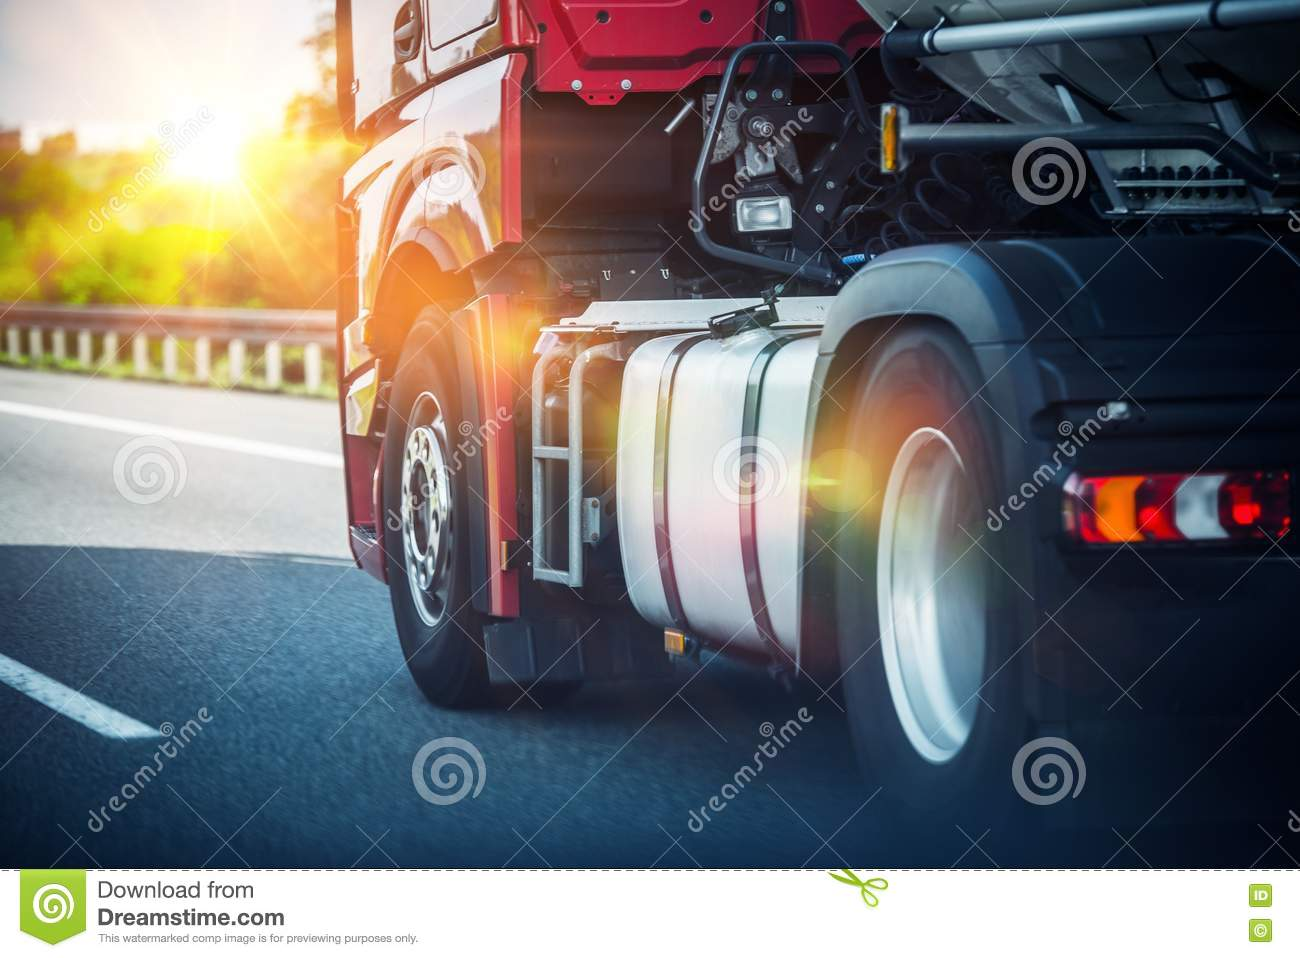 Semi Truck on a Highway